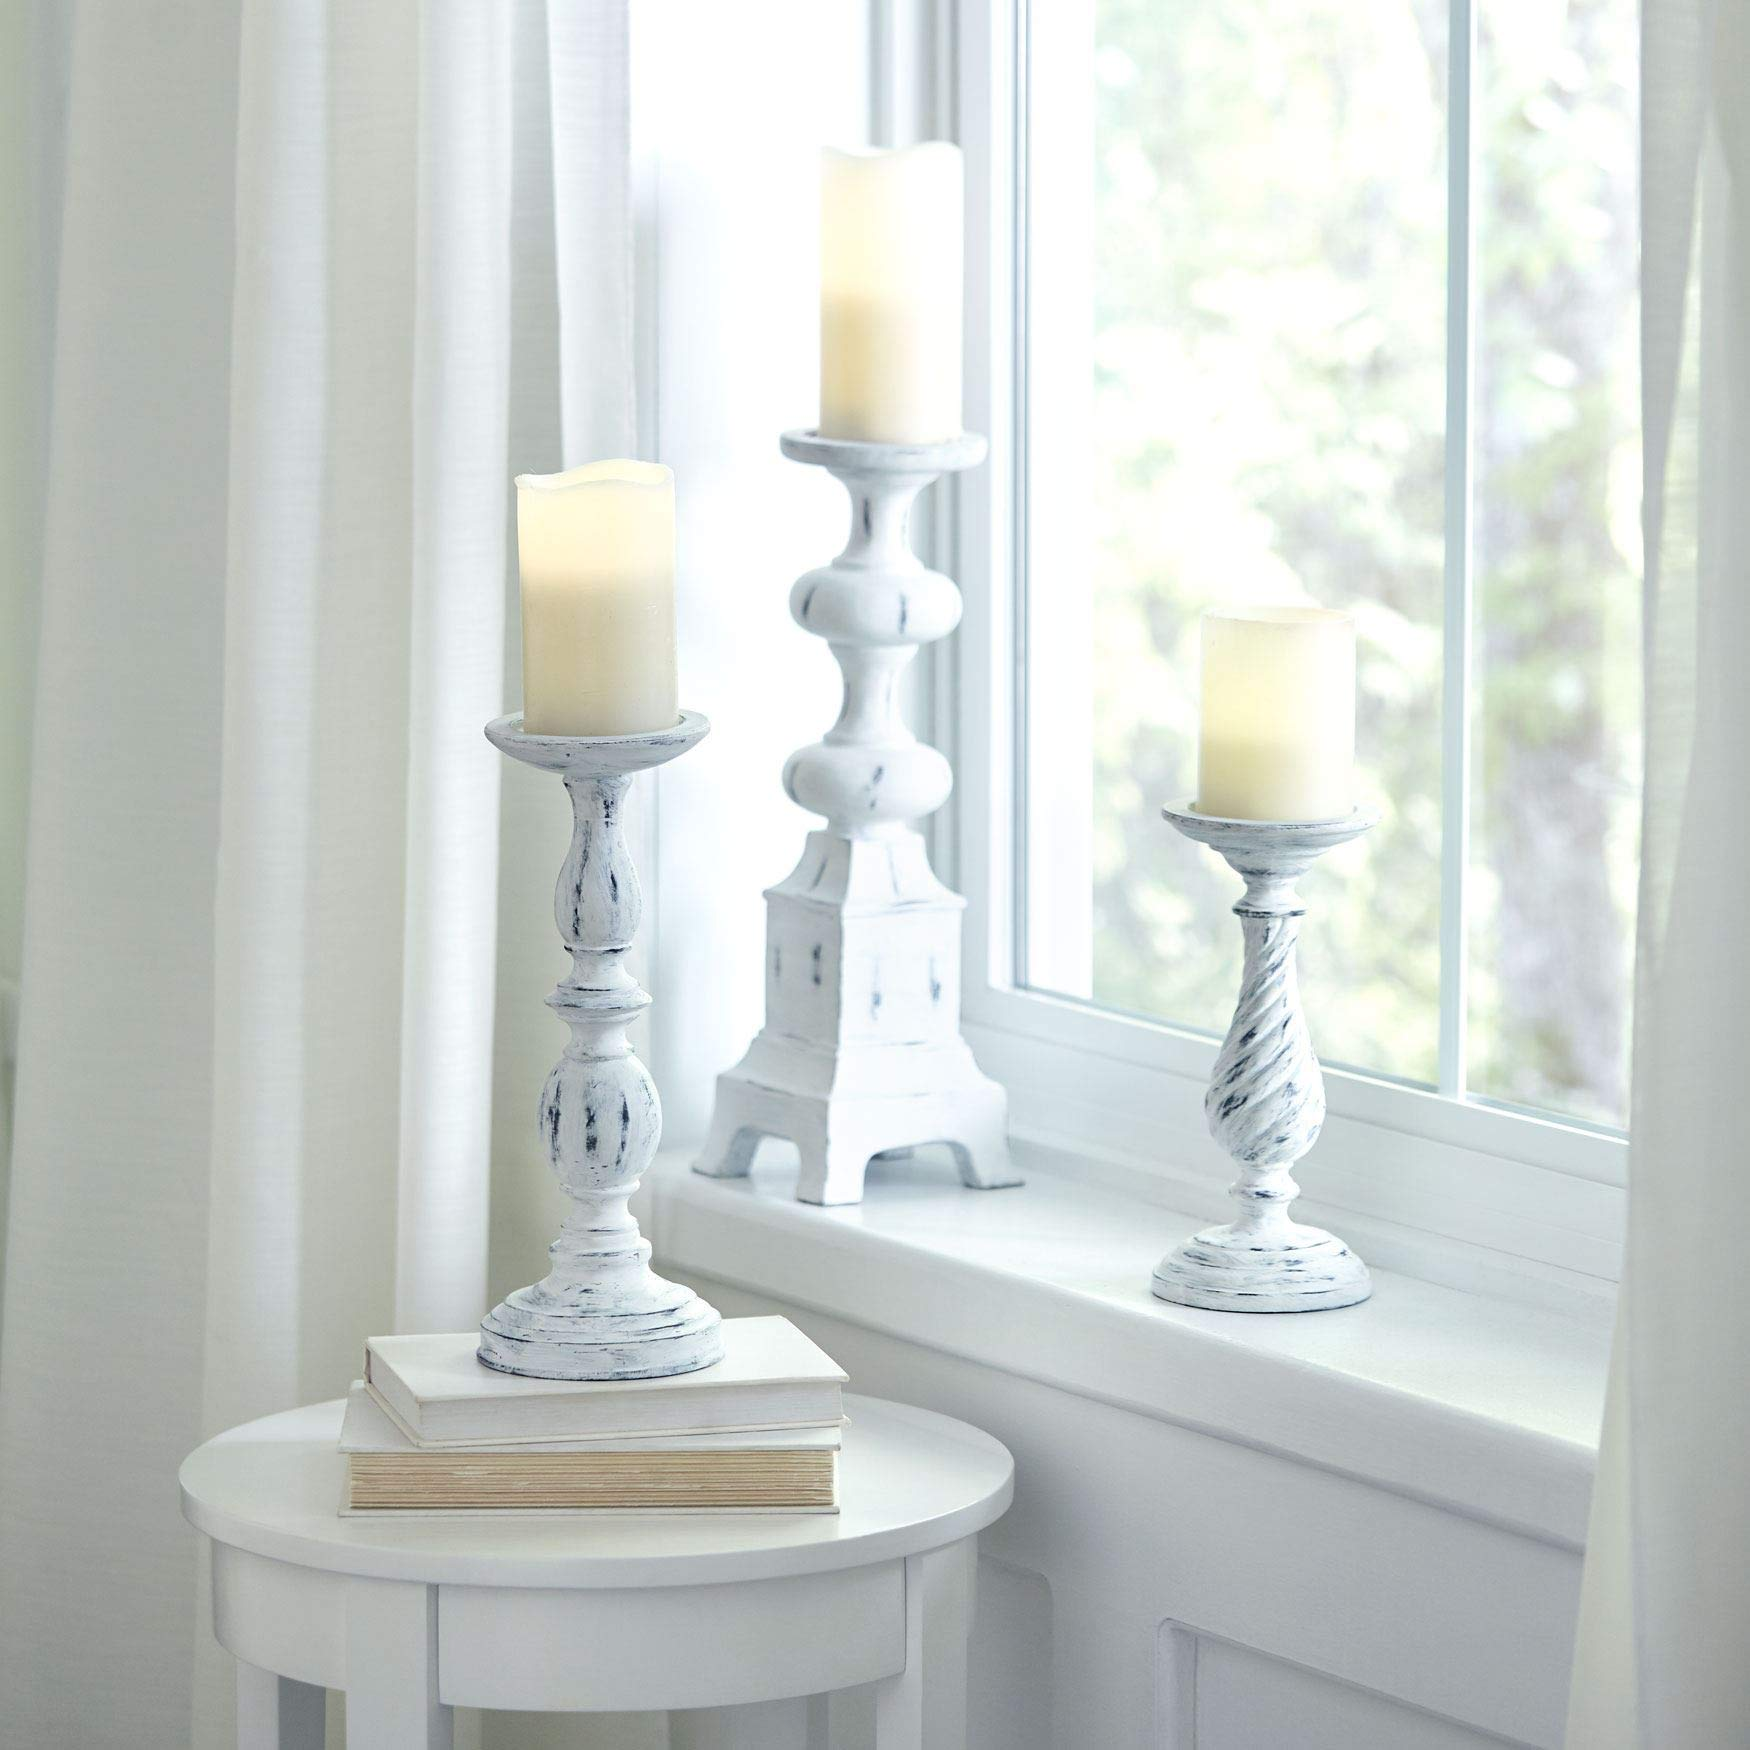 BrylaneHome White Washed Candlesticks, Set of 3 - White Washed